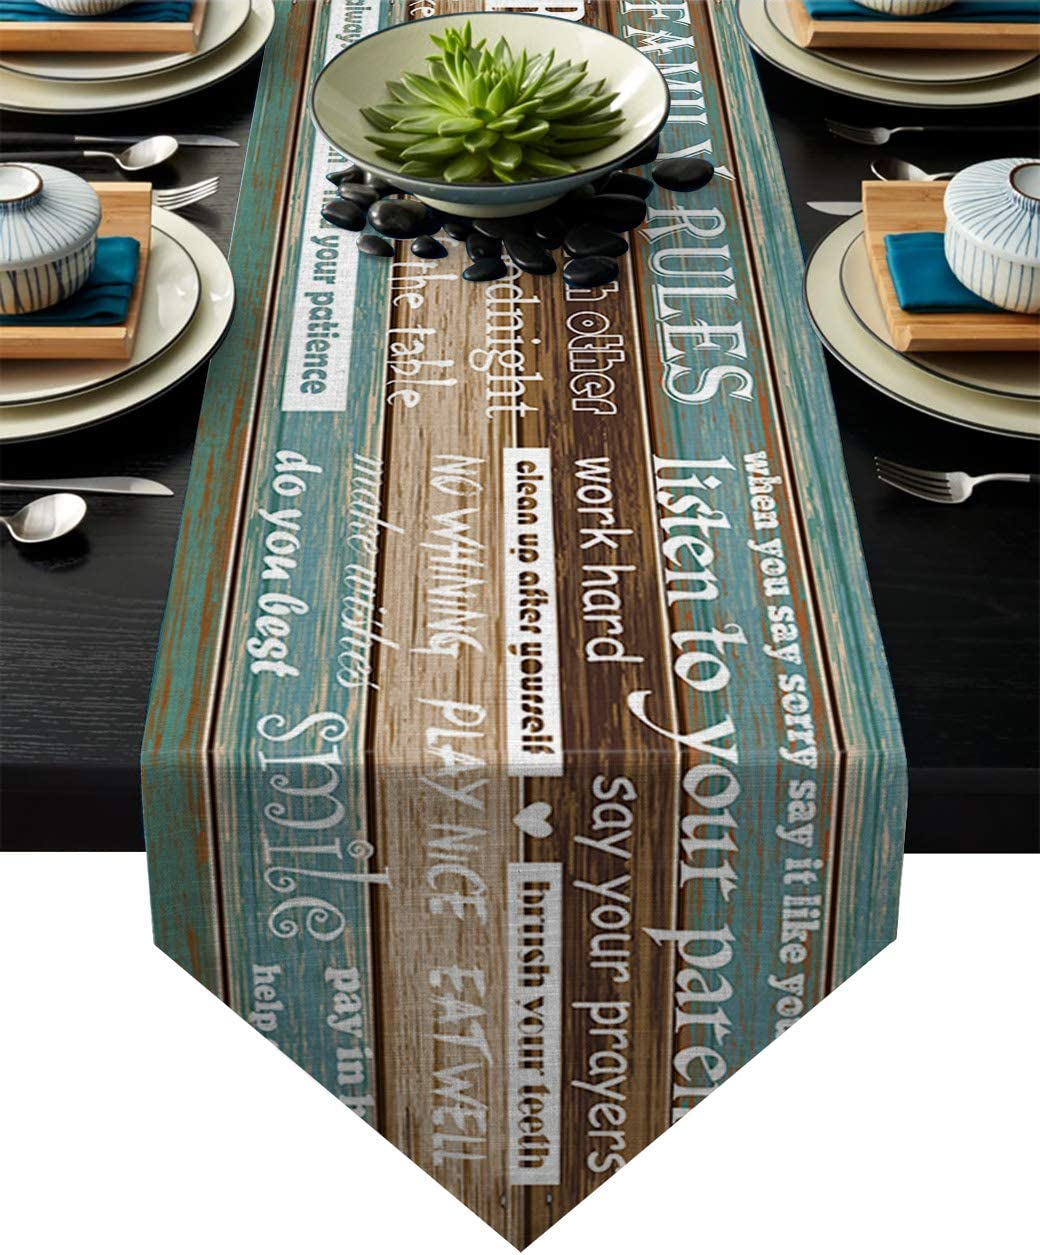 Rustic Farmhouse Indoor-Outdoor LEO BON Dining Table Runner Family Rules Words on Retro Wood Grain Table Runners for Kitchen Table Dresser Weddings,13x70inch